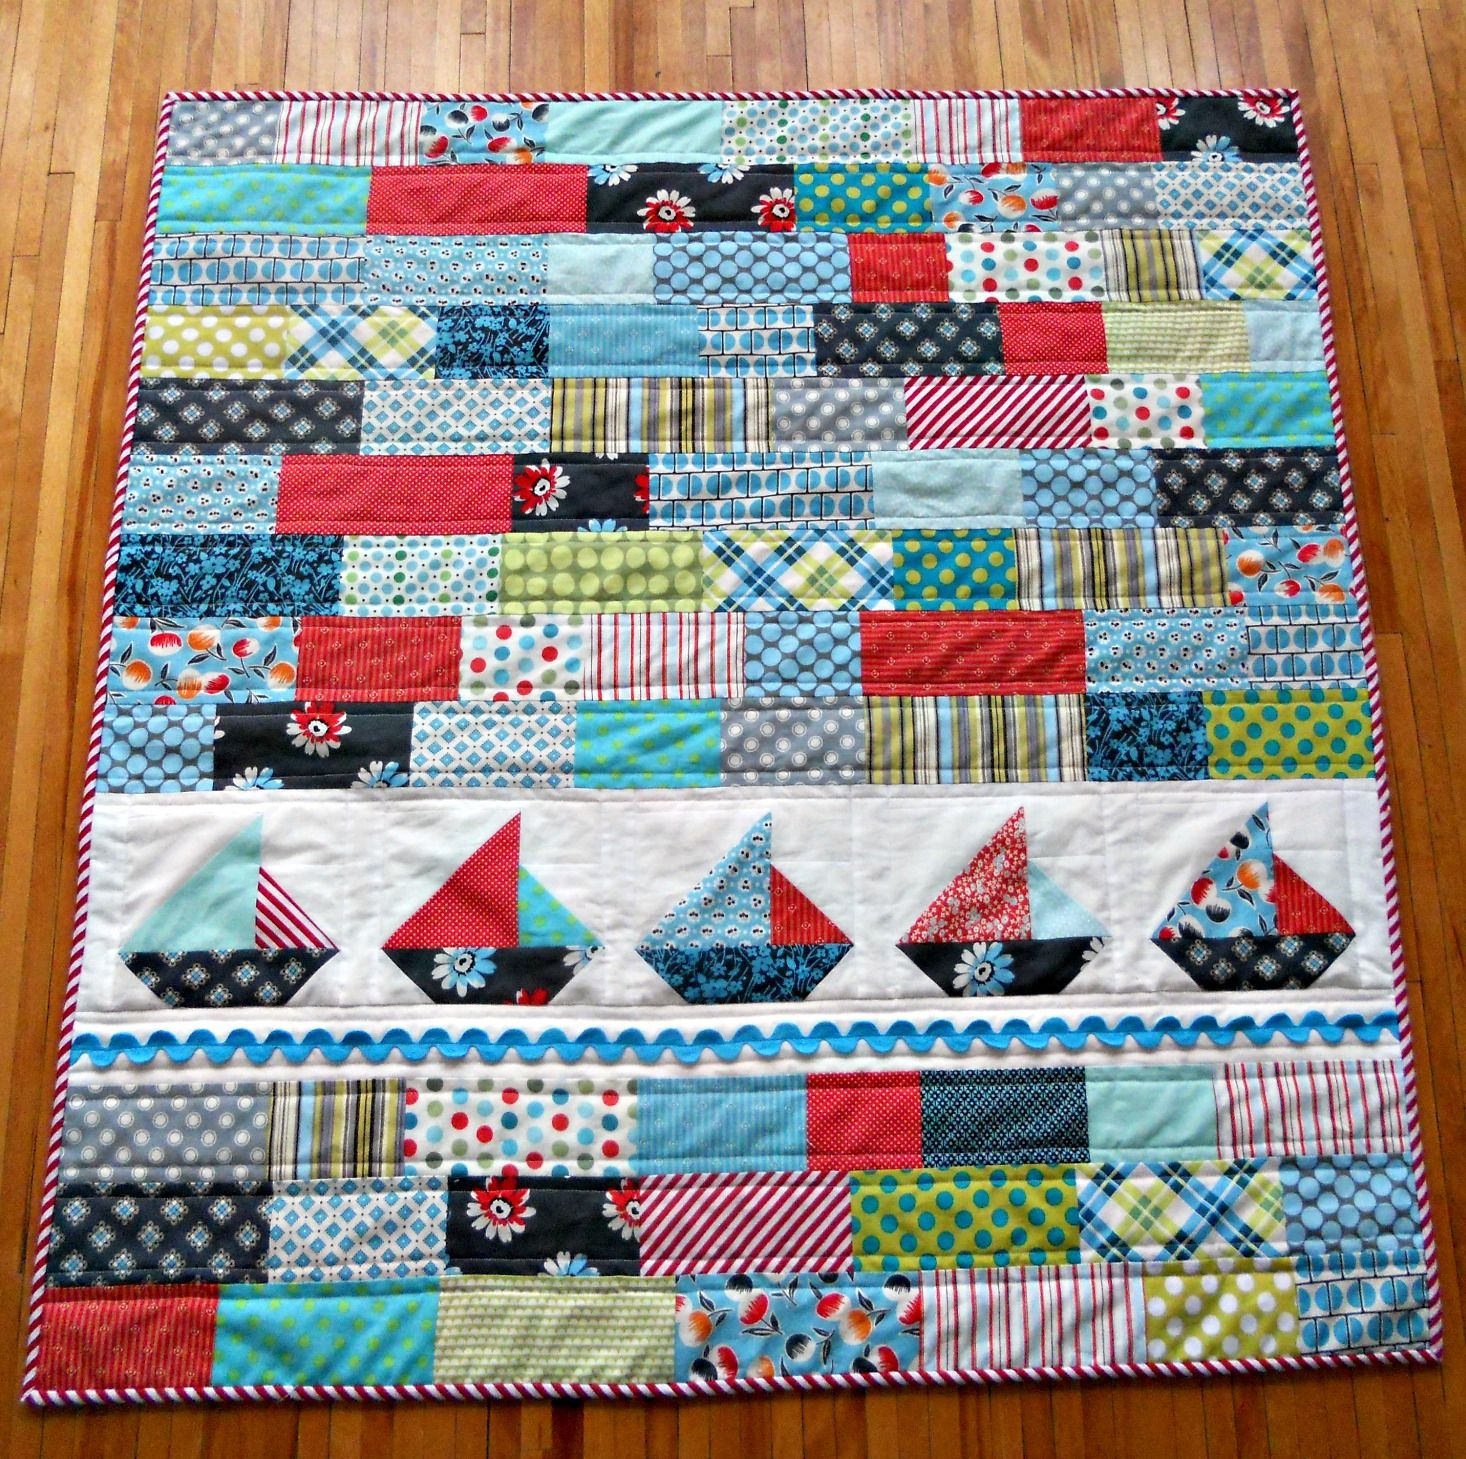 Patchwork Quilt For A Boy: Sailboat Baby Quilt, Boy Quilts, Baby Quilts